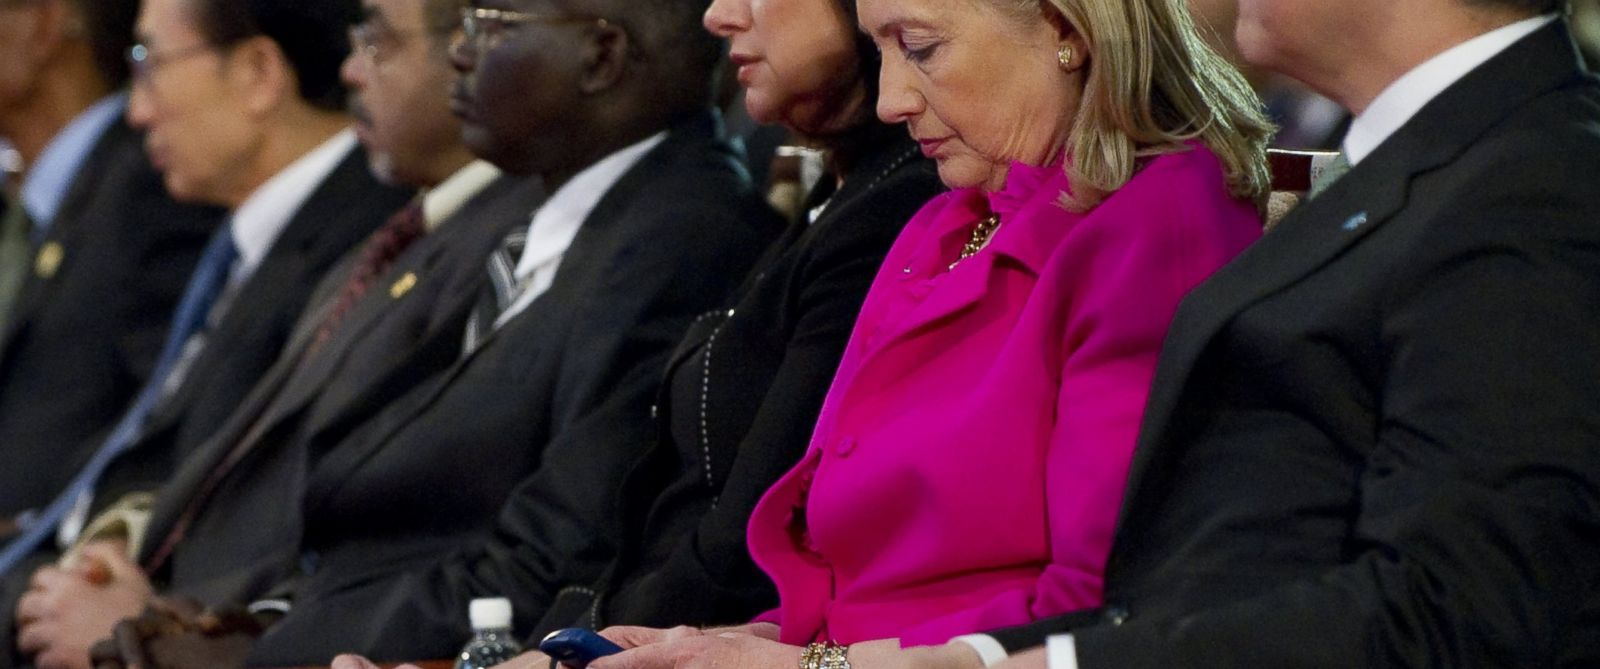 PHOTO: U.S. Secretary of State Hillary Rodham Clinton, 2nd right, checks her Blackberry phone, as she attends the Fourth High Level Forum on Aid Effectiveness in Busan, South Korea Wednesday, Nov. 30, 2011.